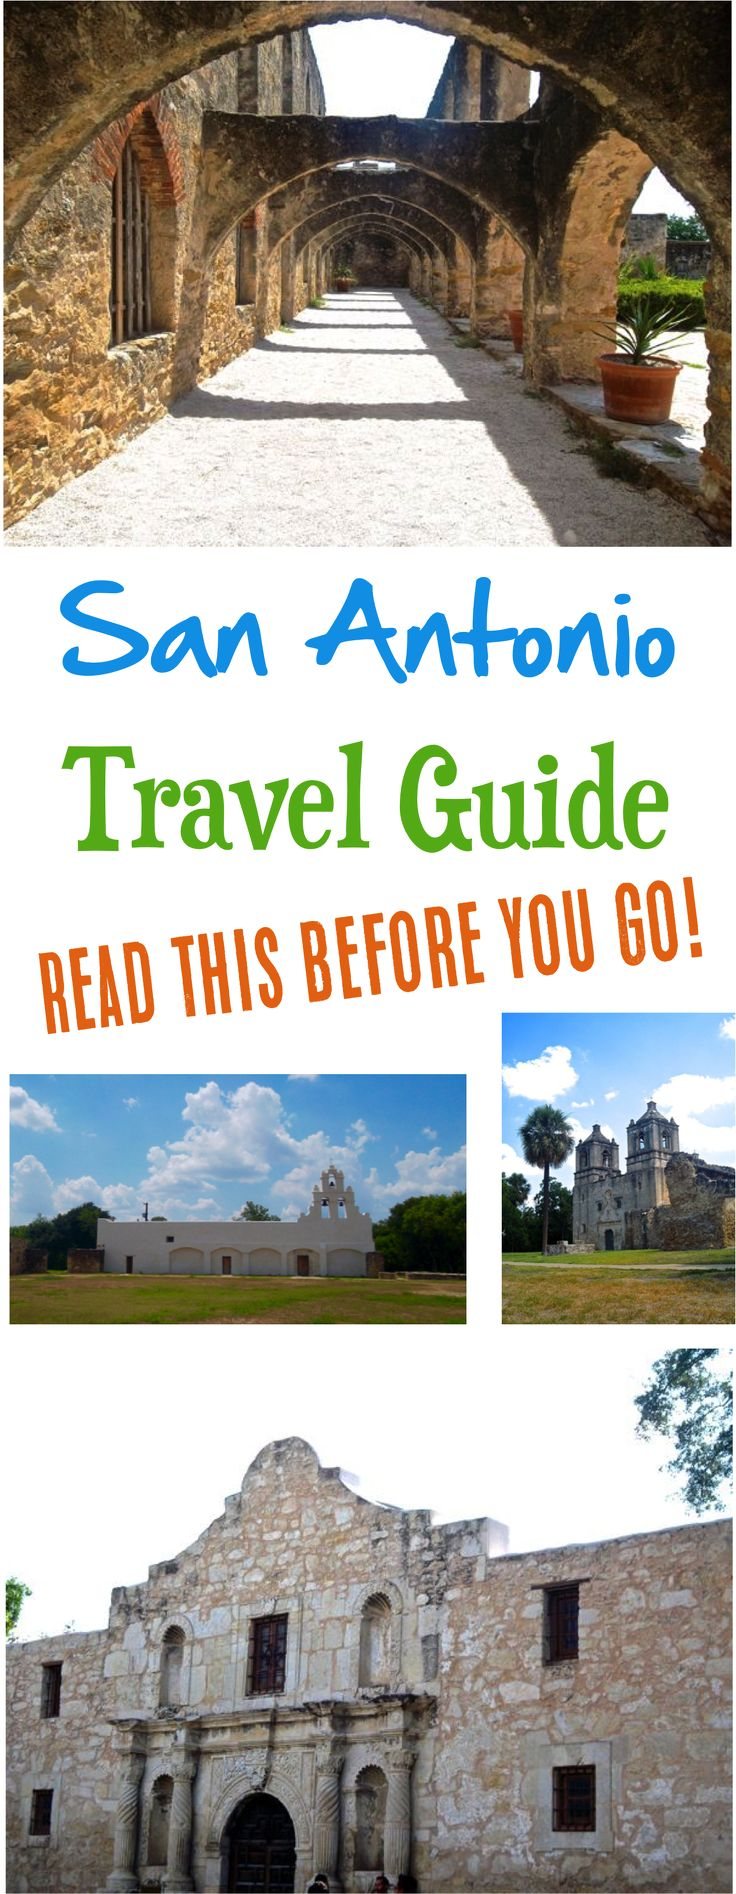 San Antonio Texas Travel Guide and Top 10 Things to Do - the must-see historical sights plus unique restaurants you've got to try!